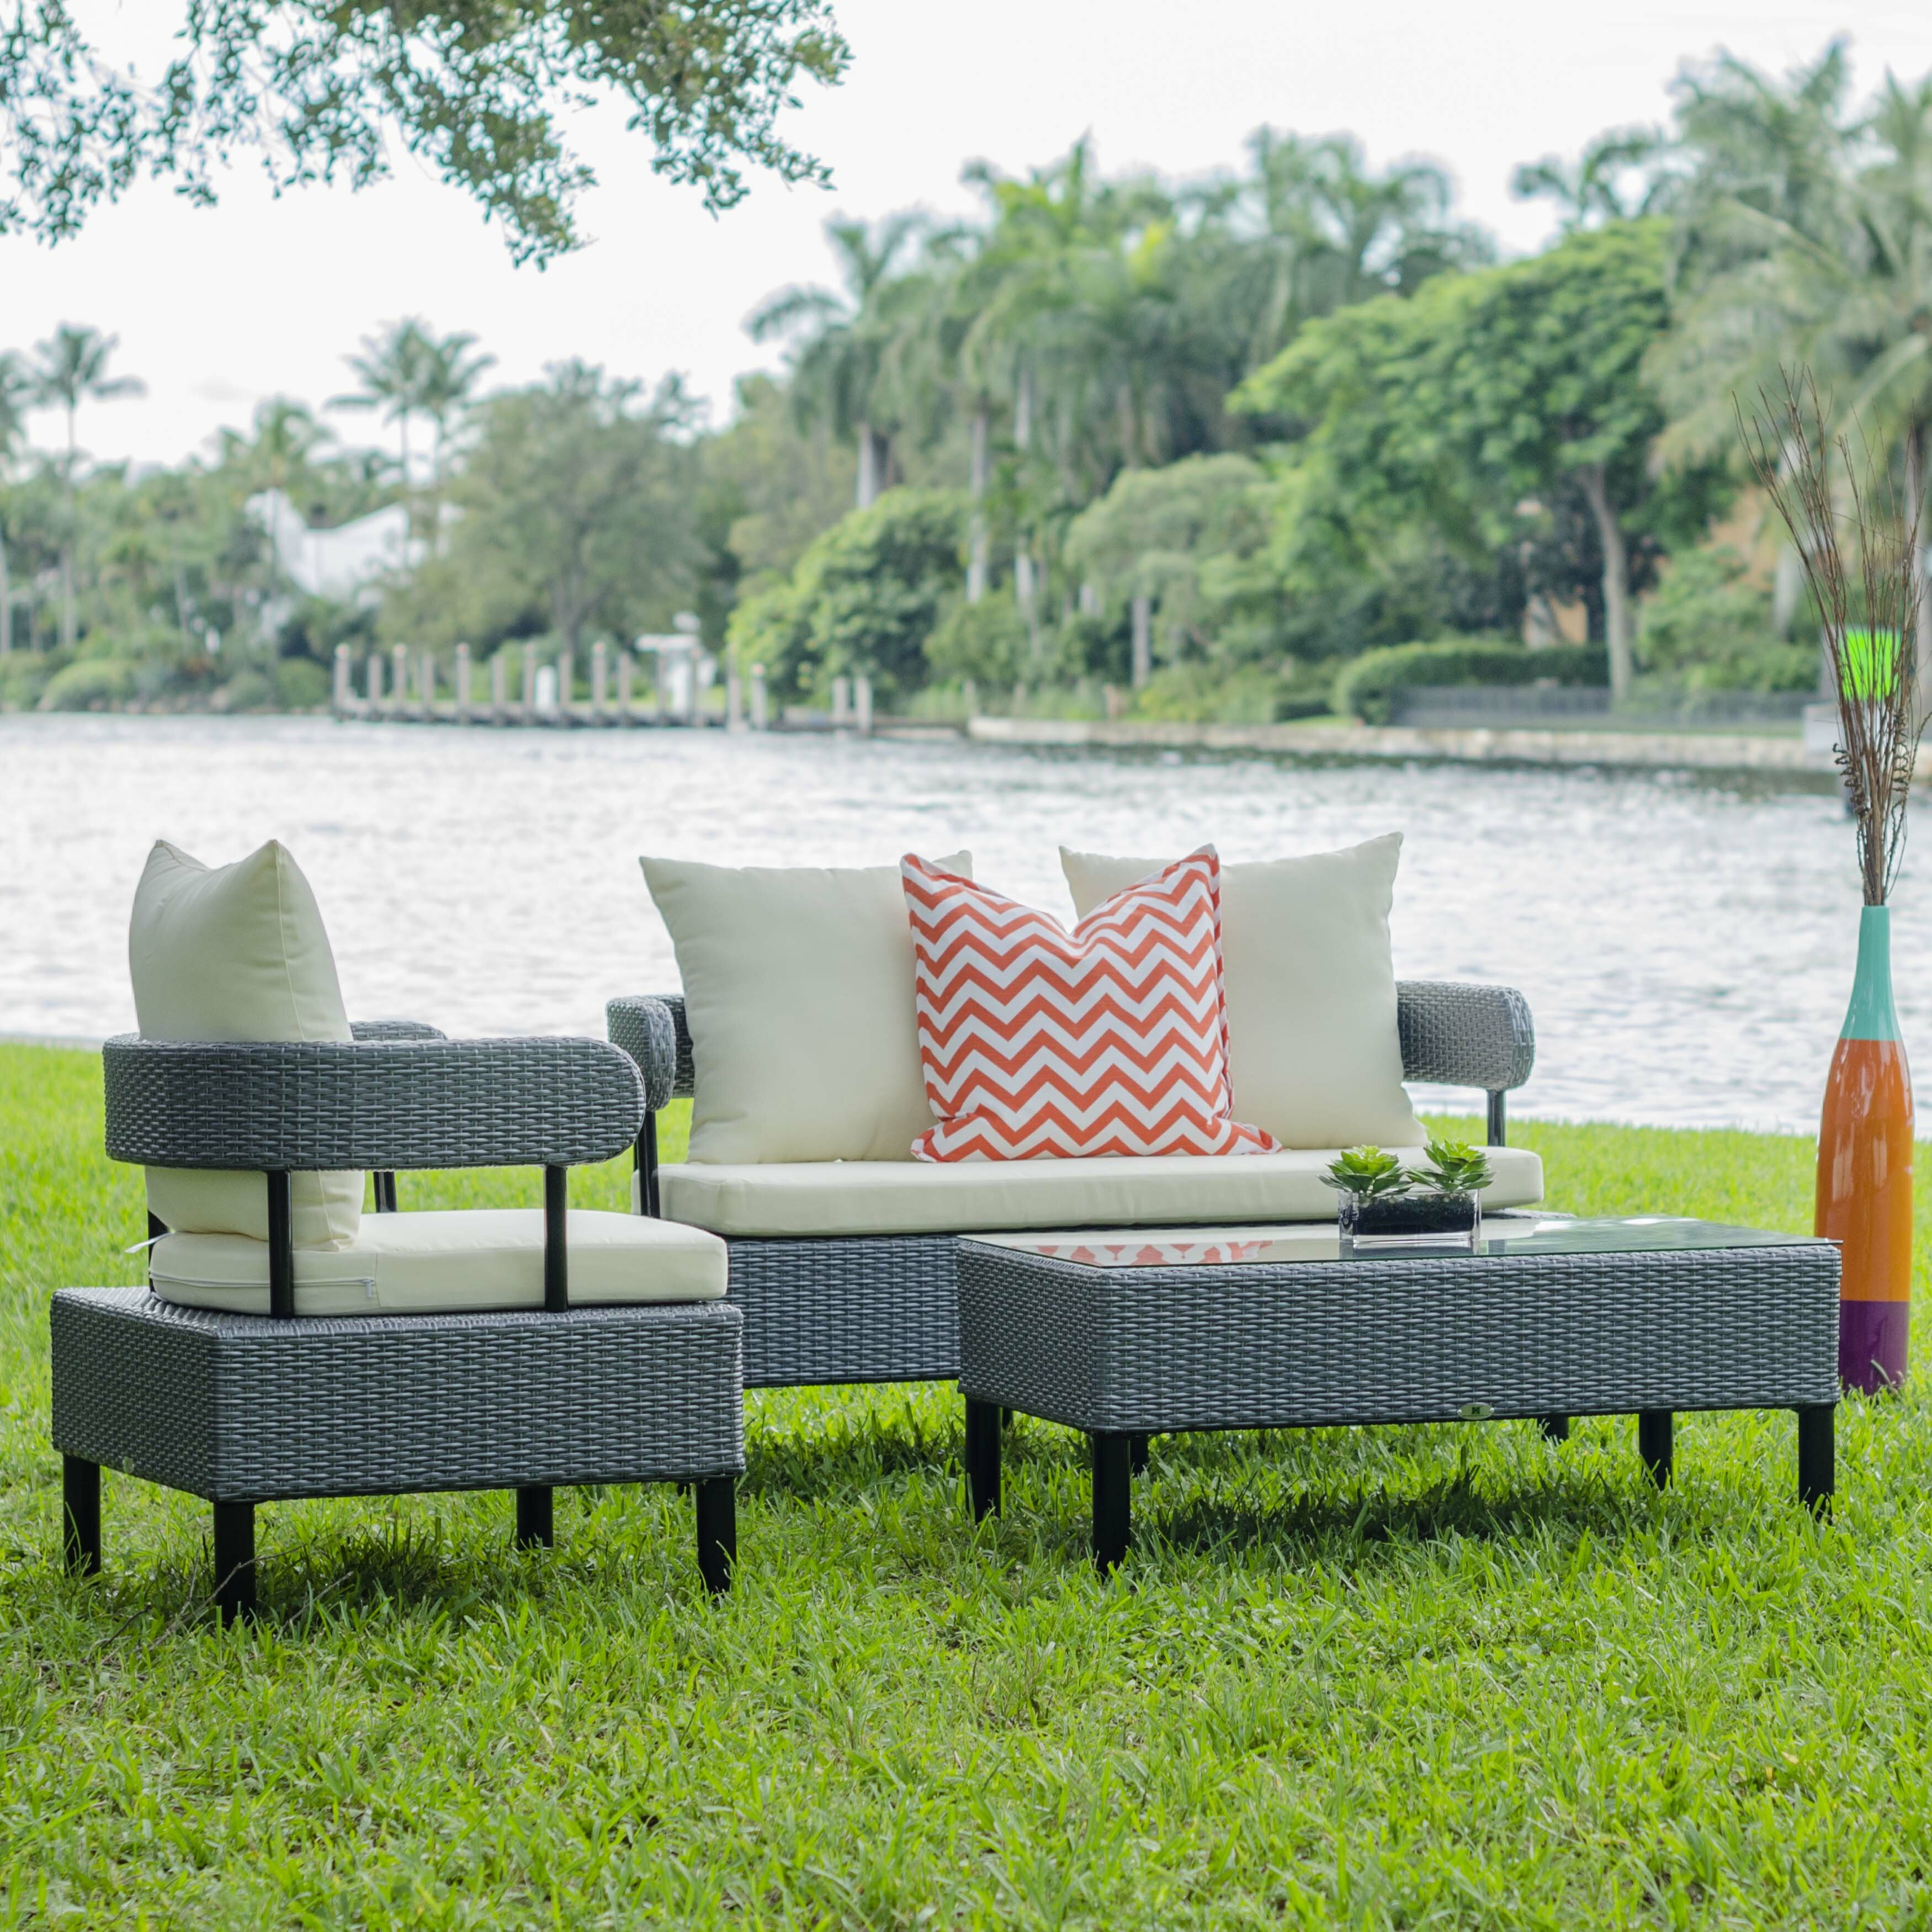 Matrix Biscayne Outdoor 4 Piece Lounge Seating Group with ... on Outdoor Living Room Set id=48051